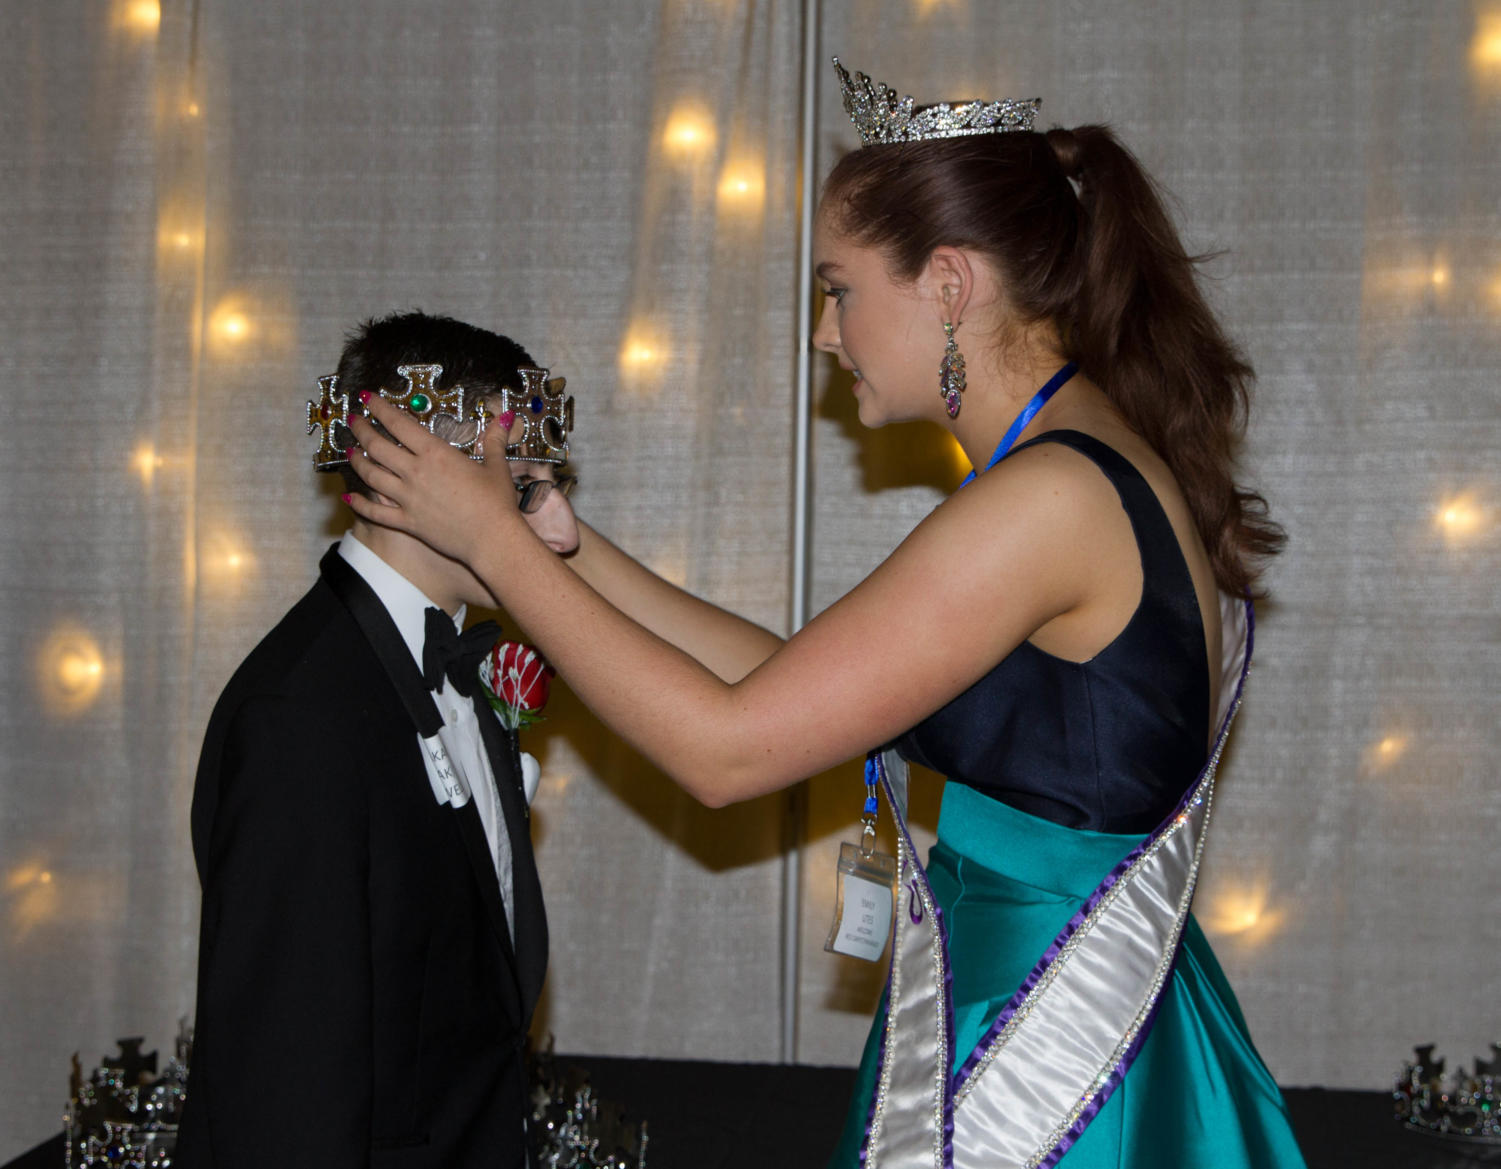 Miss Teen Texas crowns every student at Night to Shine a king or queen at Argyle High School on Feb. 9, 2018 in Argyle, TX. (Lauren Landrum / The Talon News)